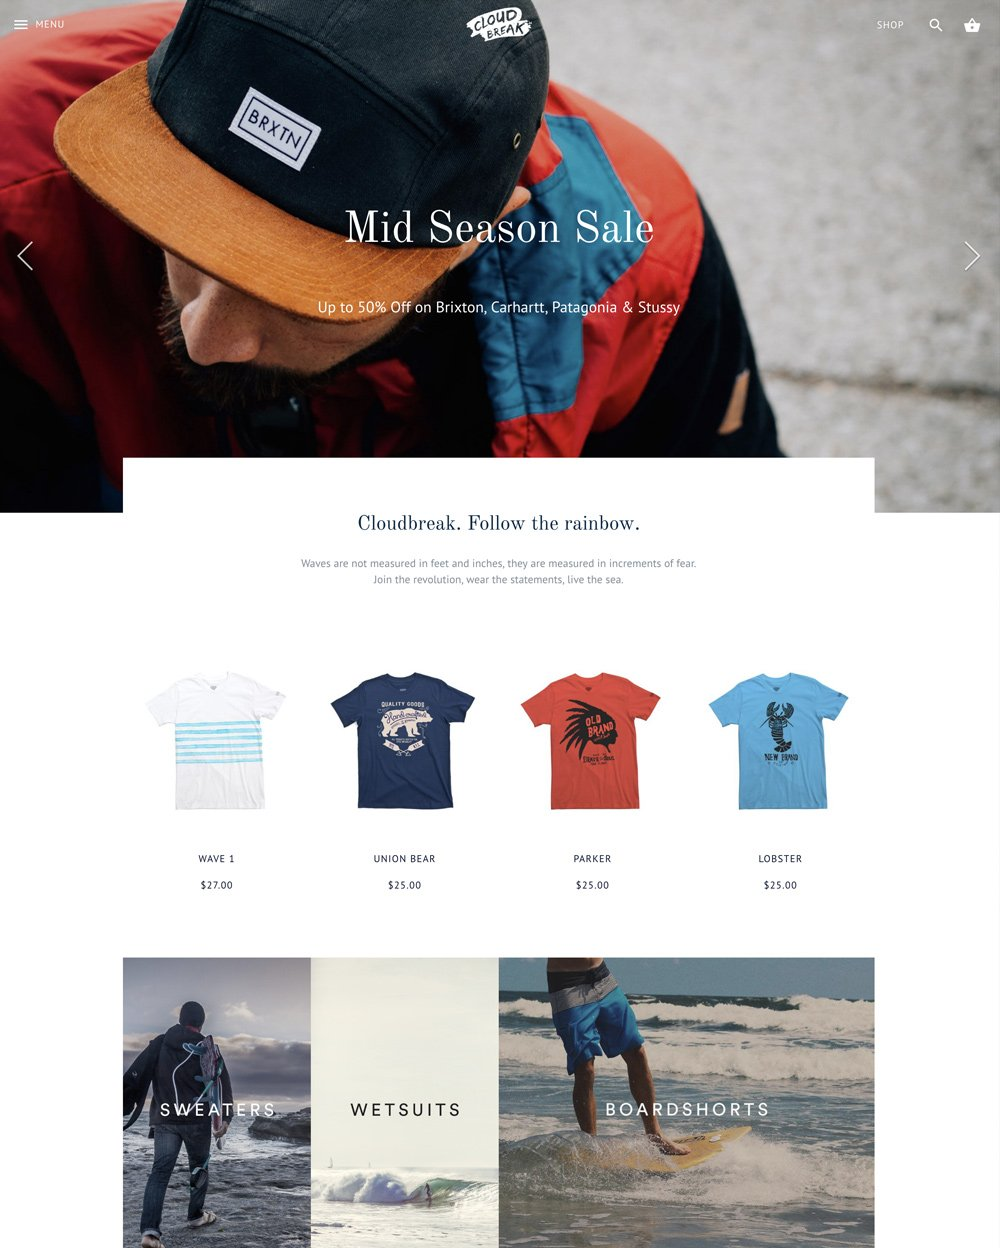 Sell More on Shopify with Premium Themes, Apps, and Custom E